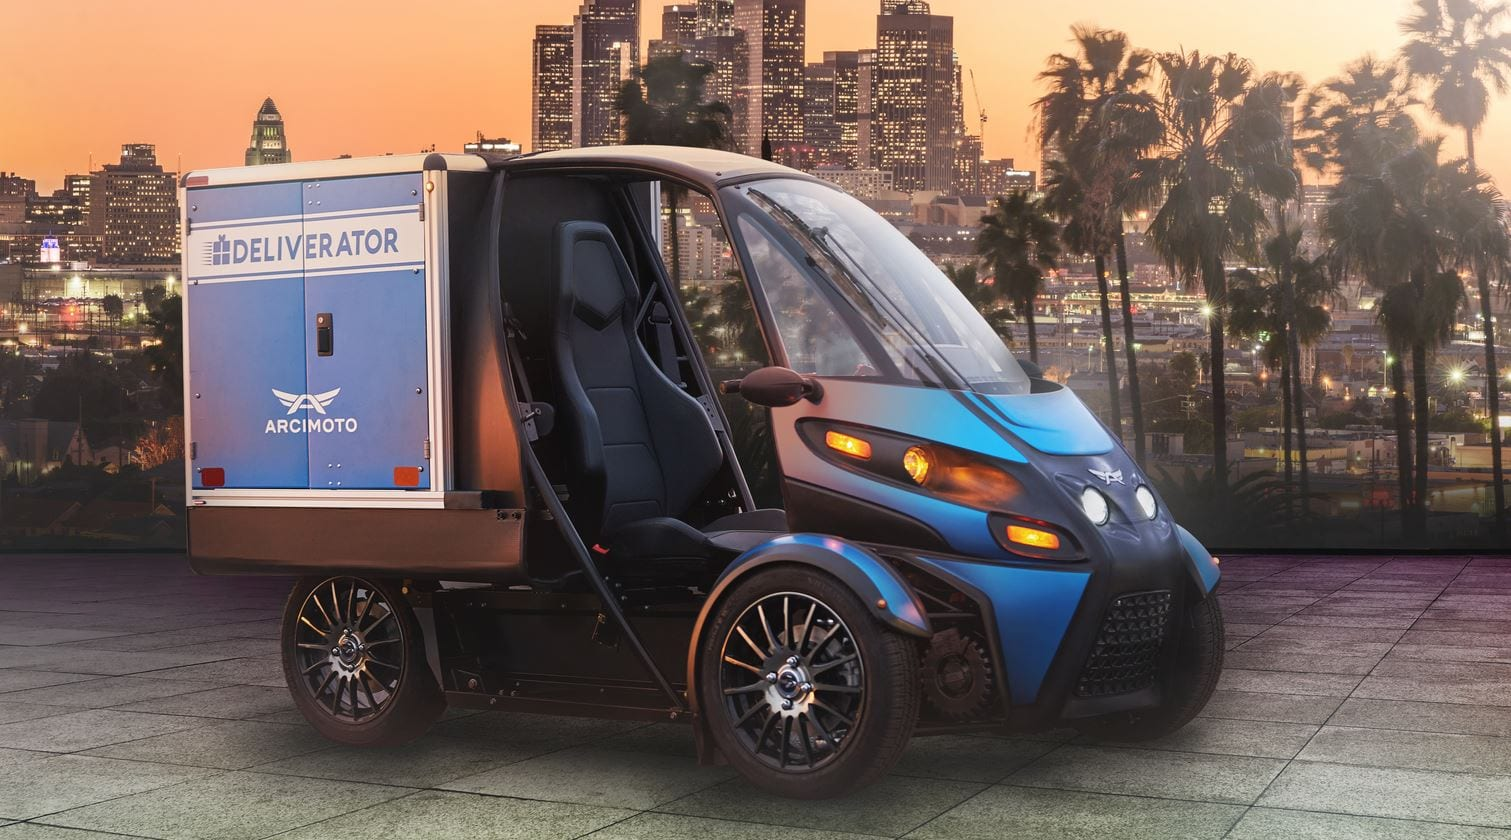 The Deliverator is a pure electric, last-mile delivery solution designed to more quickly, safely, and affordably get your goods where they need to go.